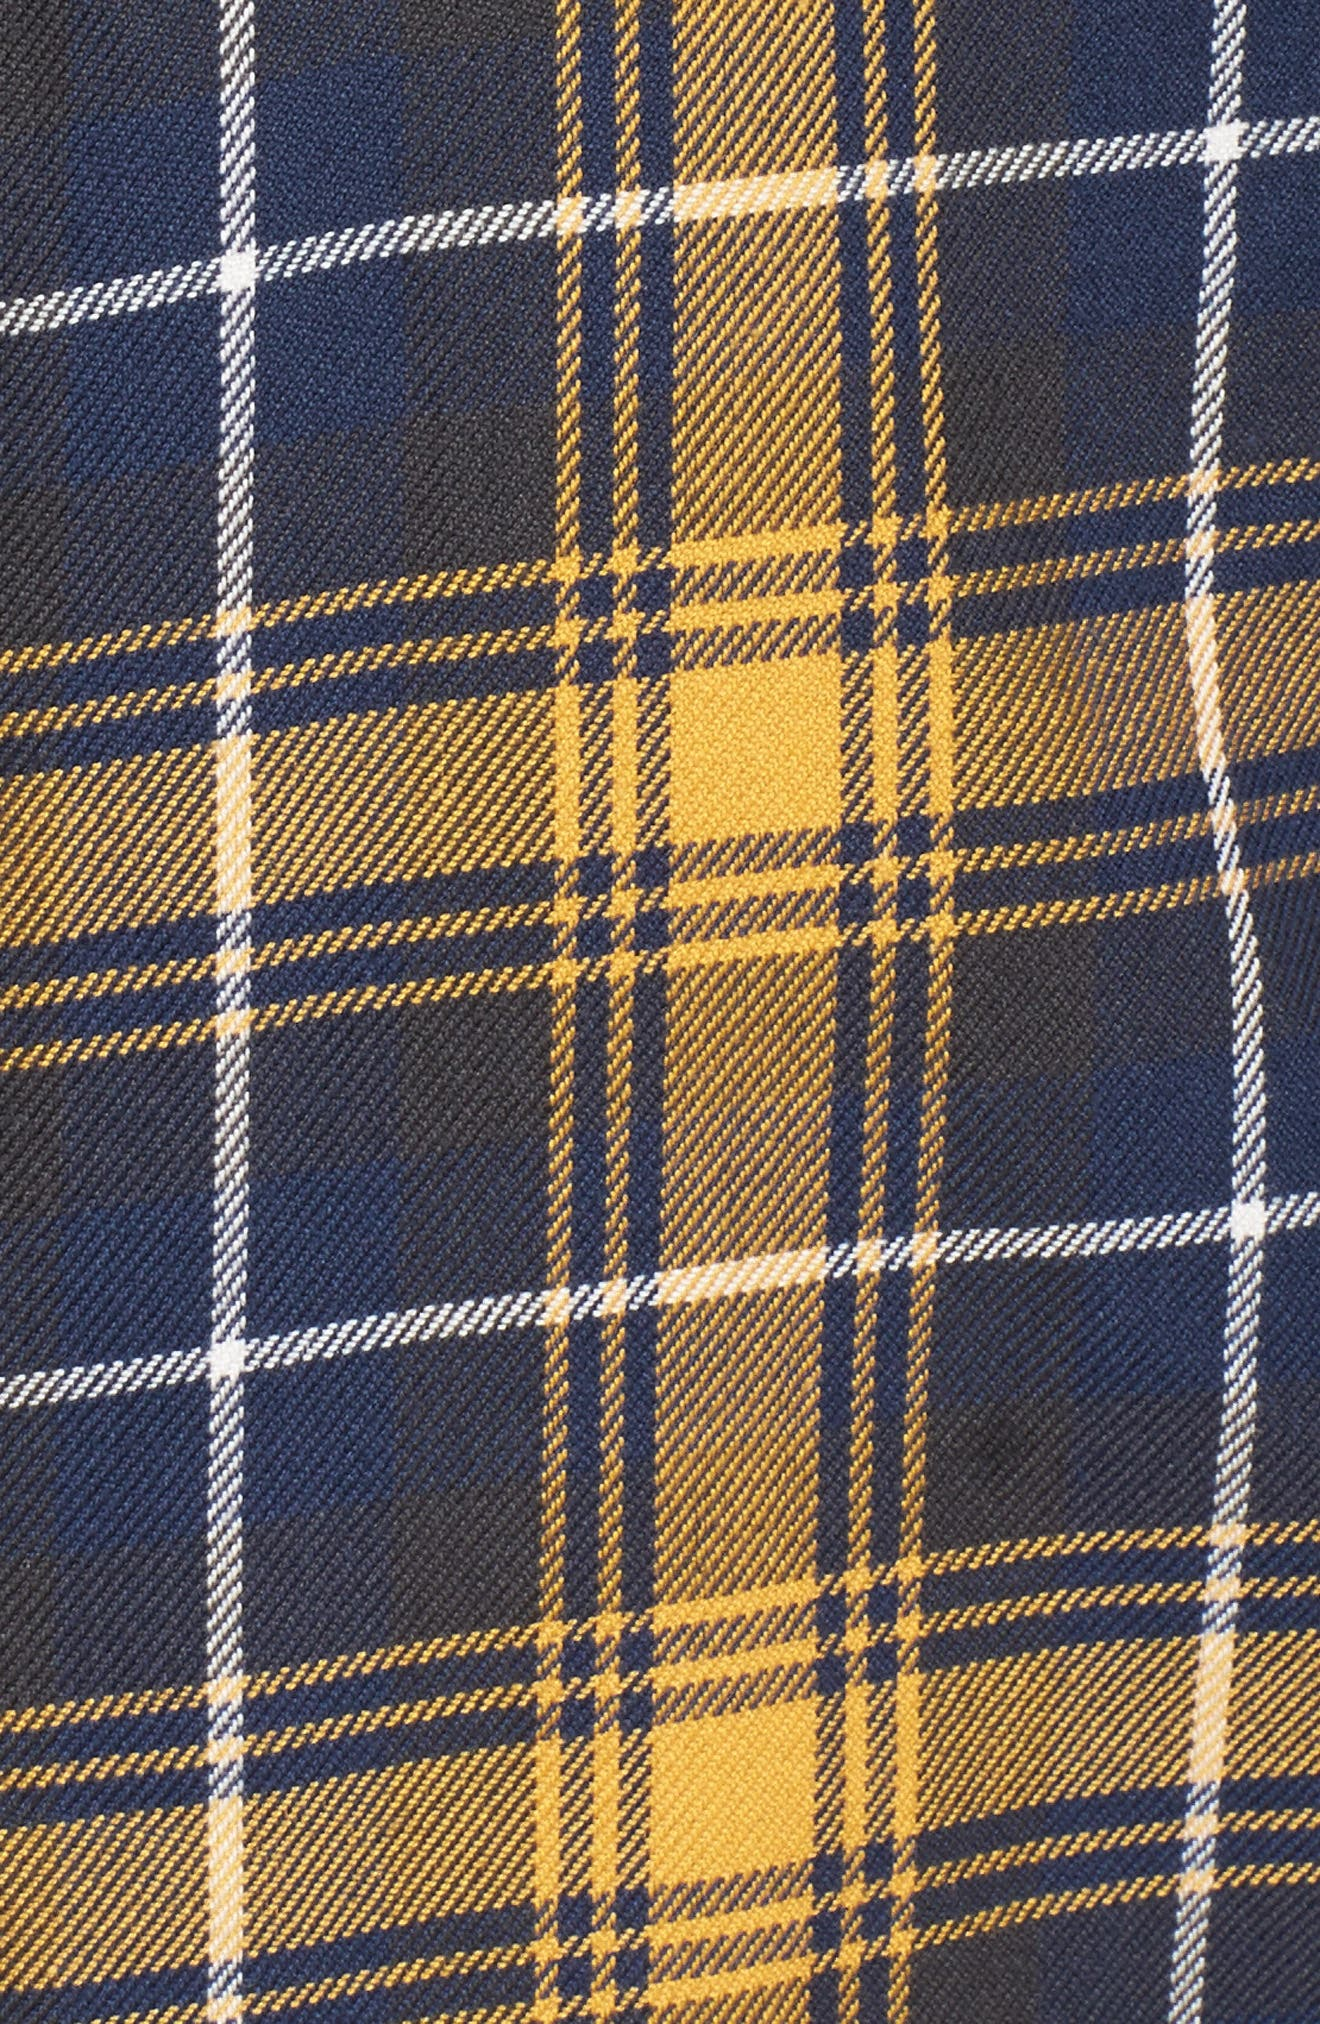 Sycamore Plaid Flannel Sport Shirt,                             Alternate thumbnail 5, color,                             Mineral Yellow/ Dress Blues